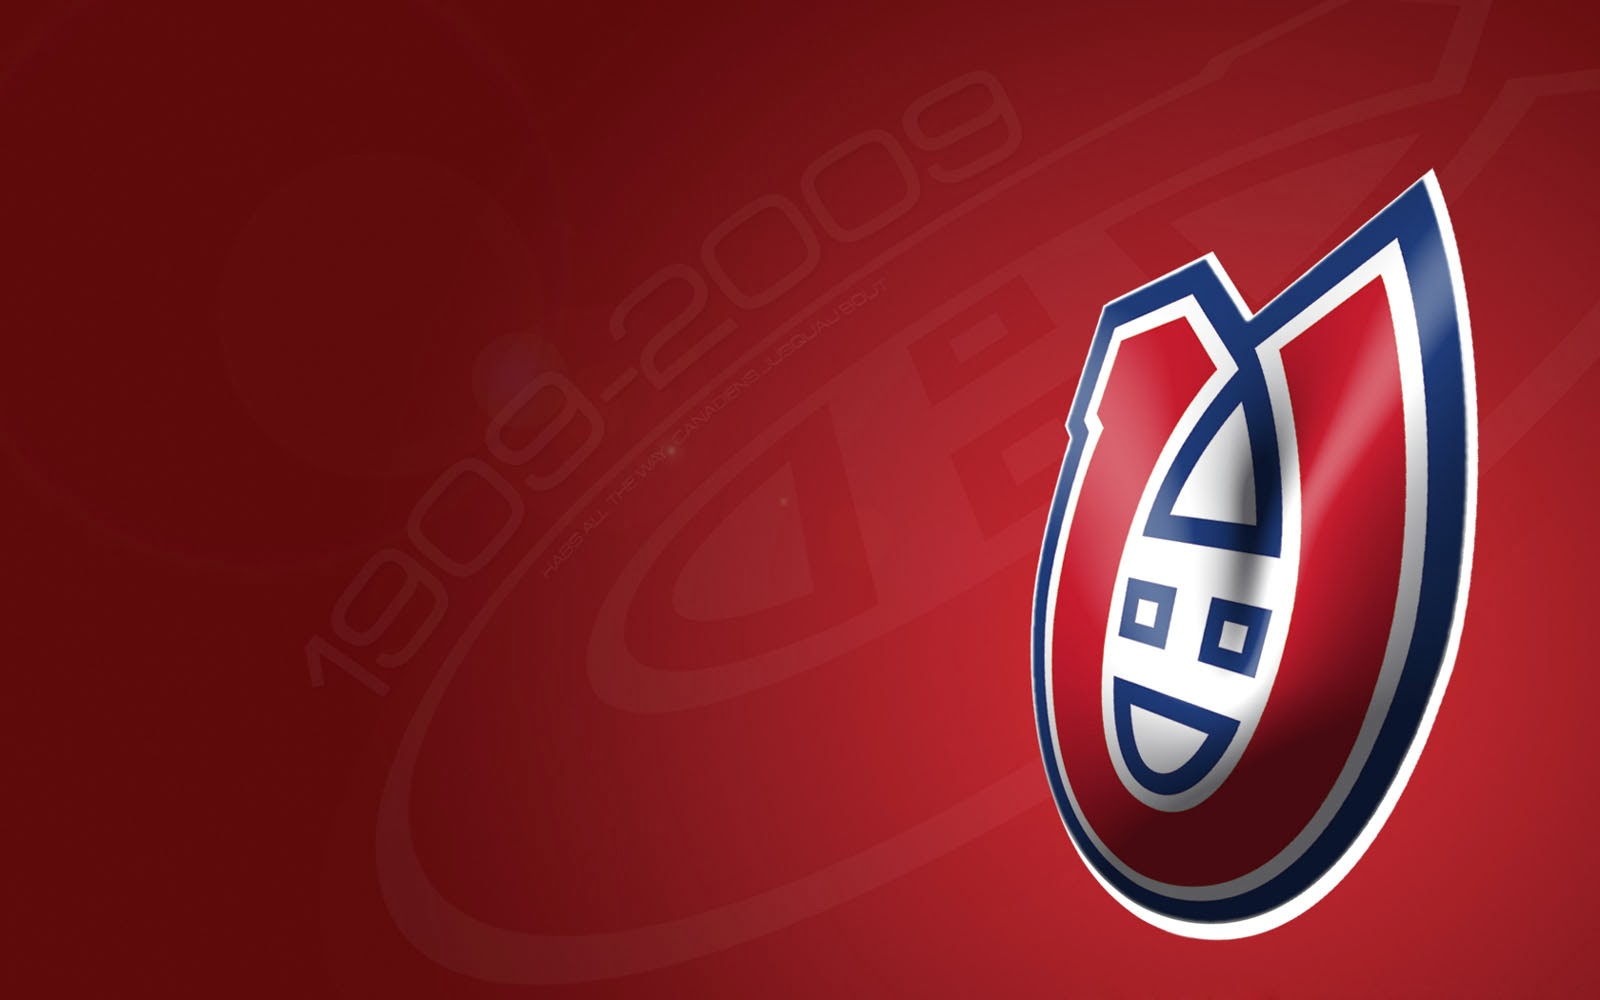 Beautiful Wallpaper Logo Montreal Canadiens - Montreal+Canadiens+Wallpapers+%25288%2529  HD_103673.jpg